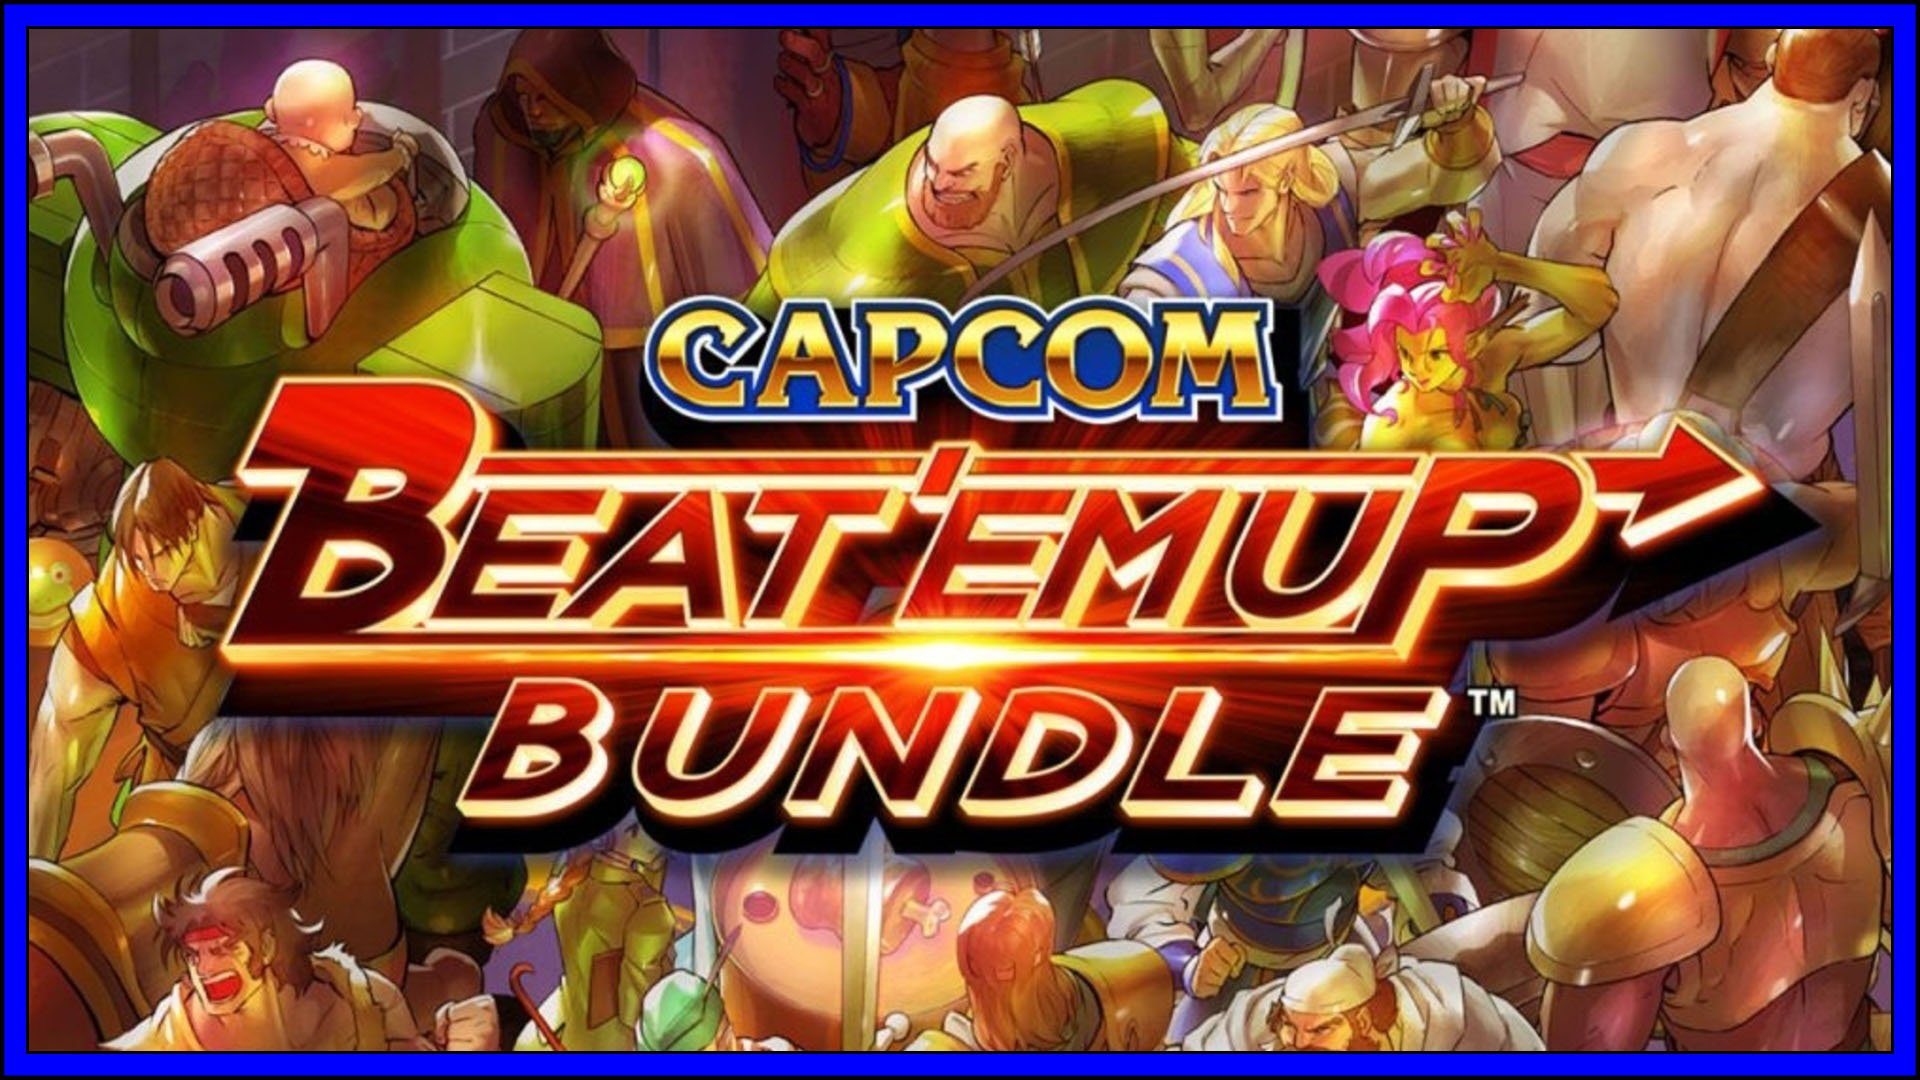 Capcom Beat 'Em Up Bundle (PS4) Review